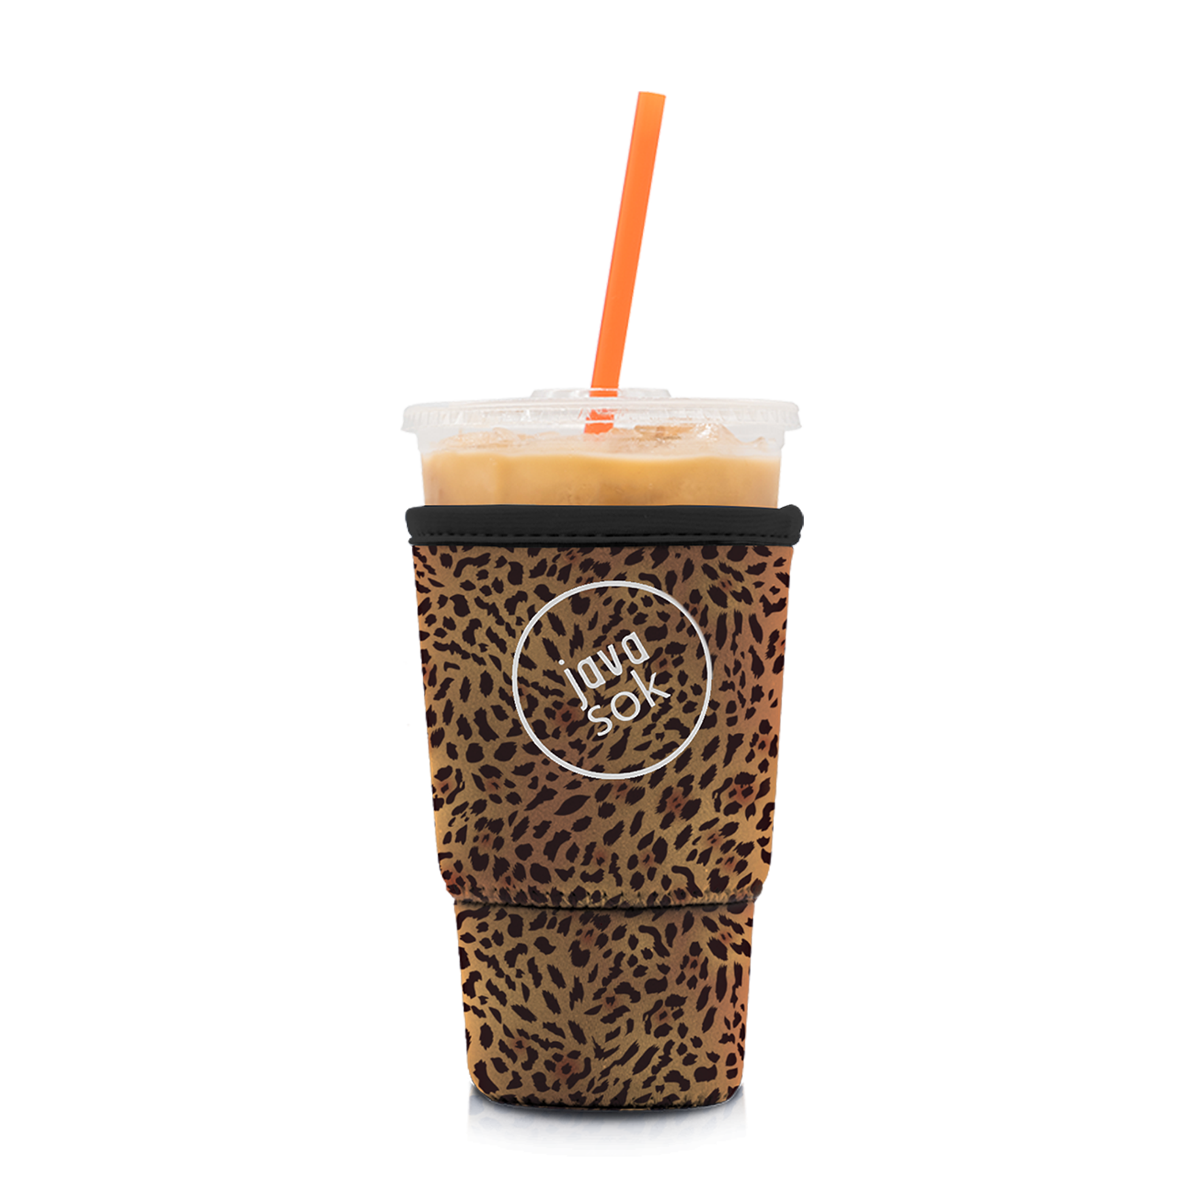 JAVA SOK, The Original Reusable Iced Coffee Sleeve in 2020